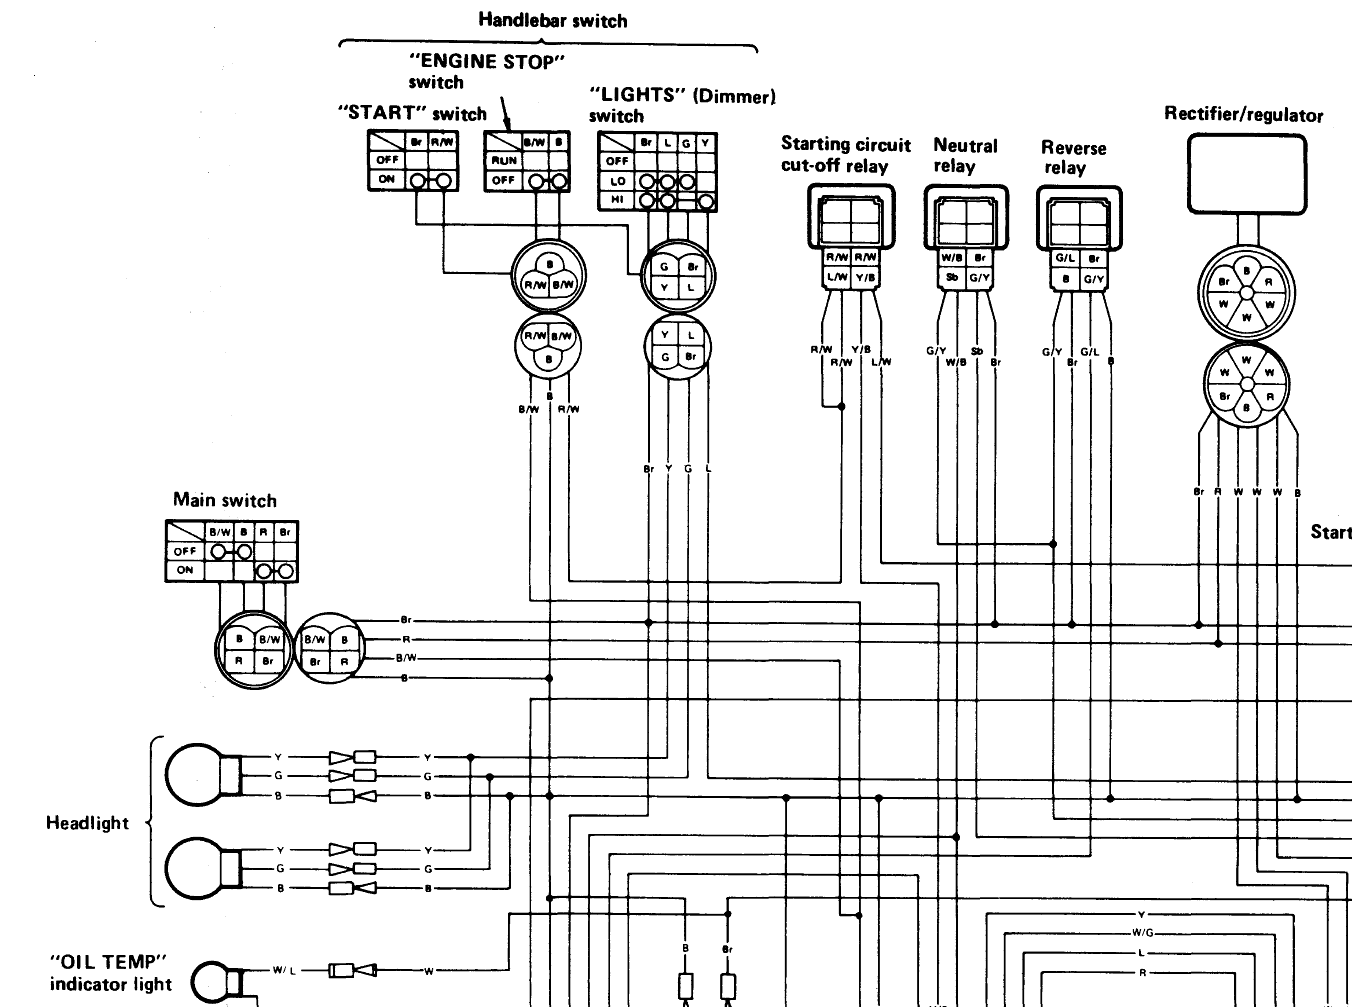 [DIAGRAM] Yamaha Wiring Diagram Moto 4 1985 FULL Version